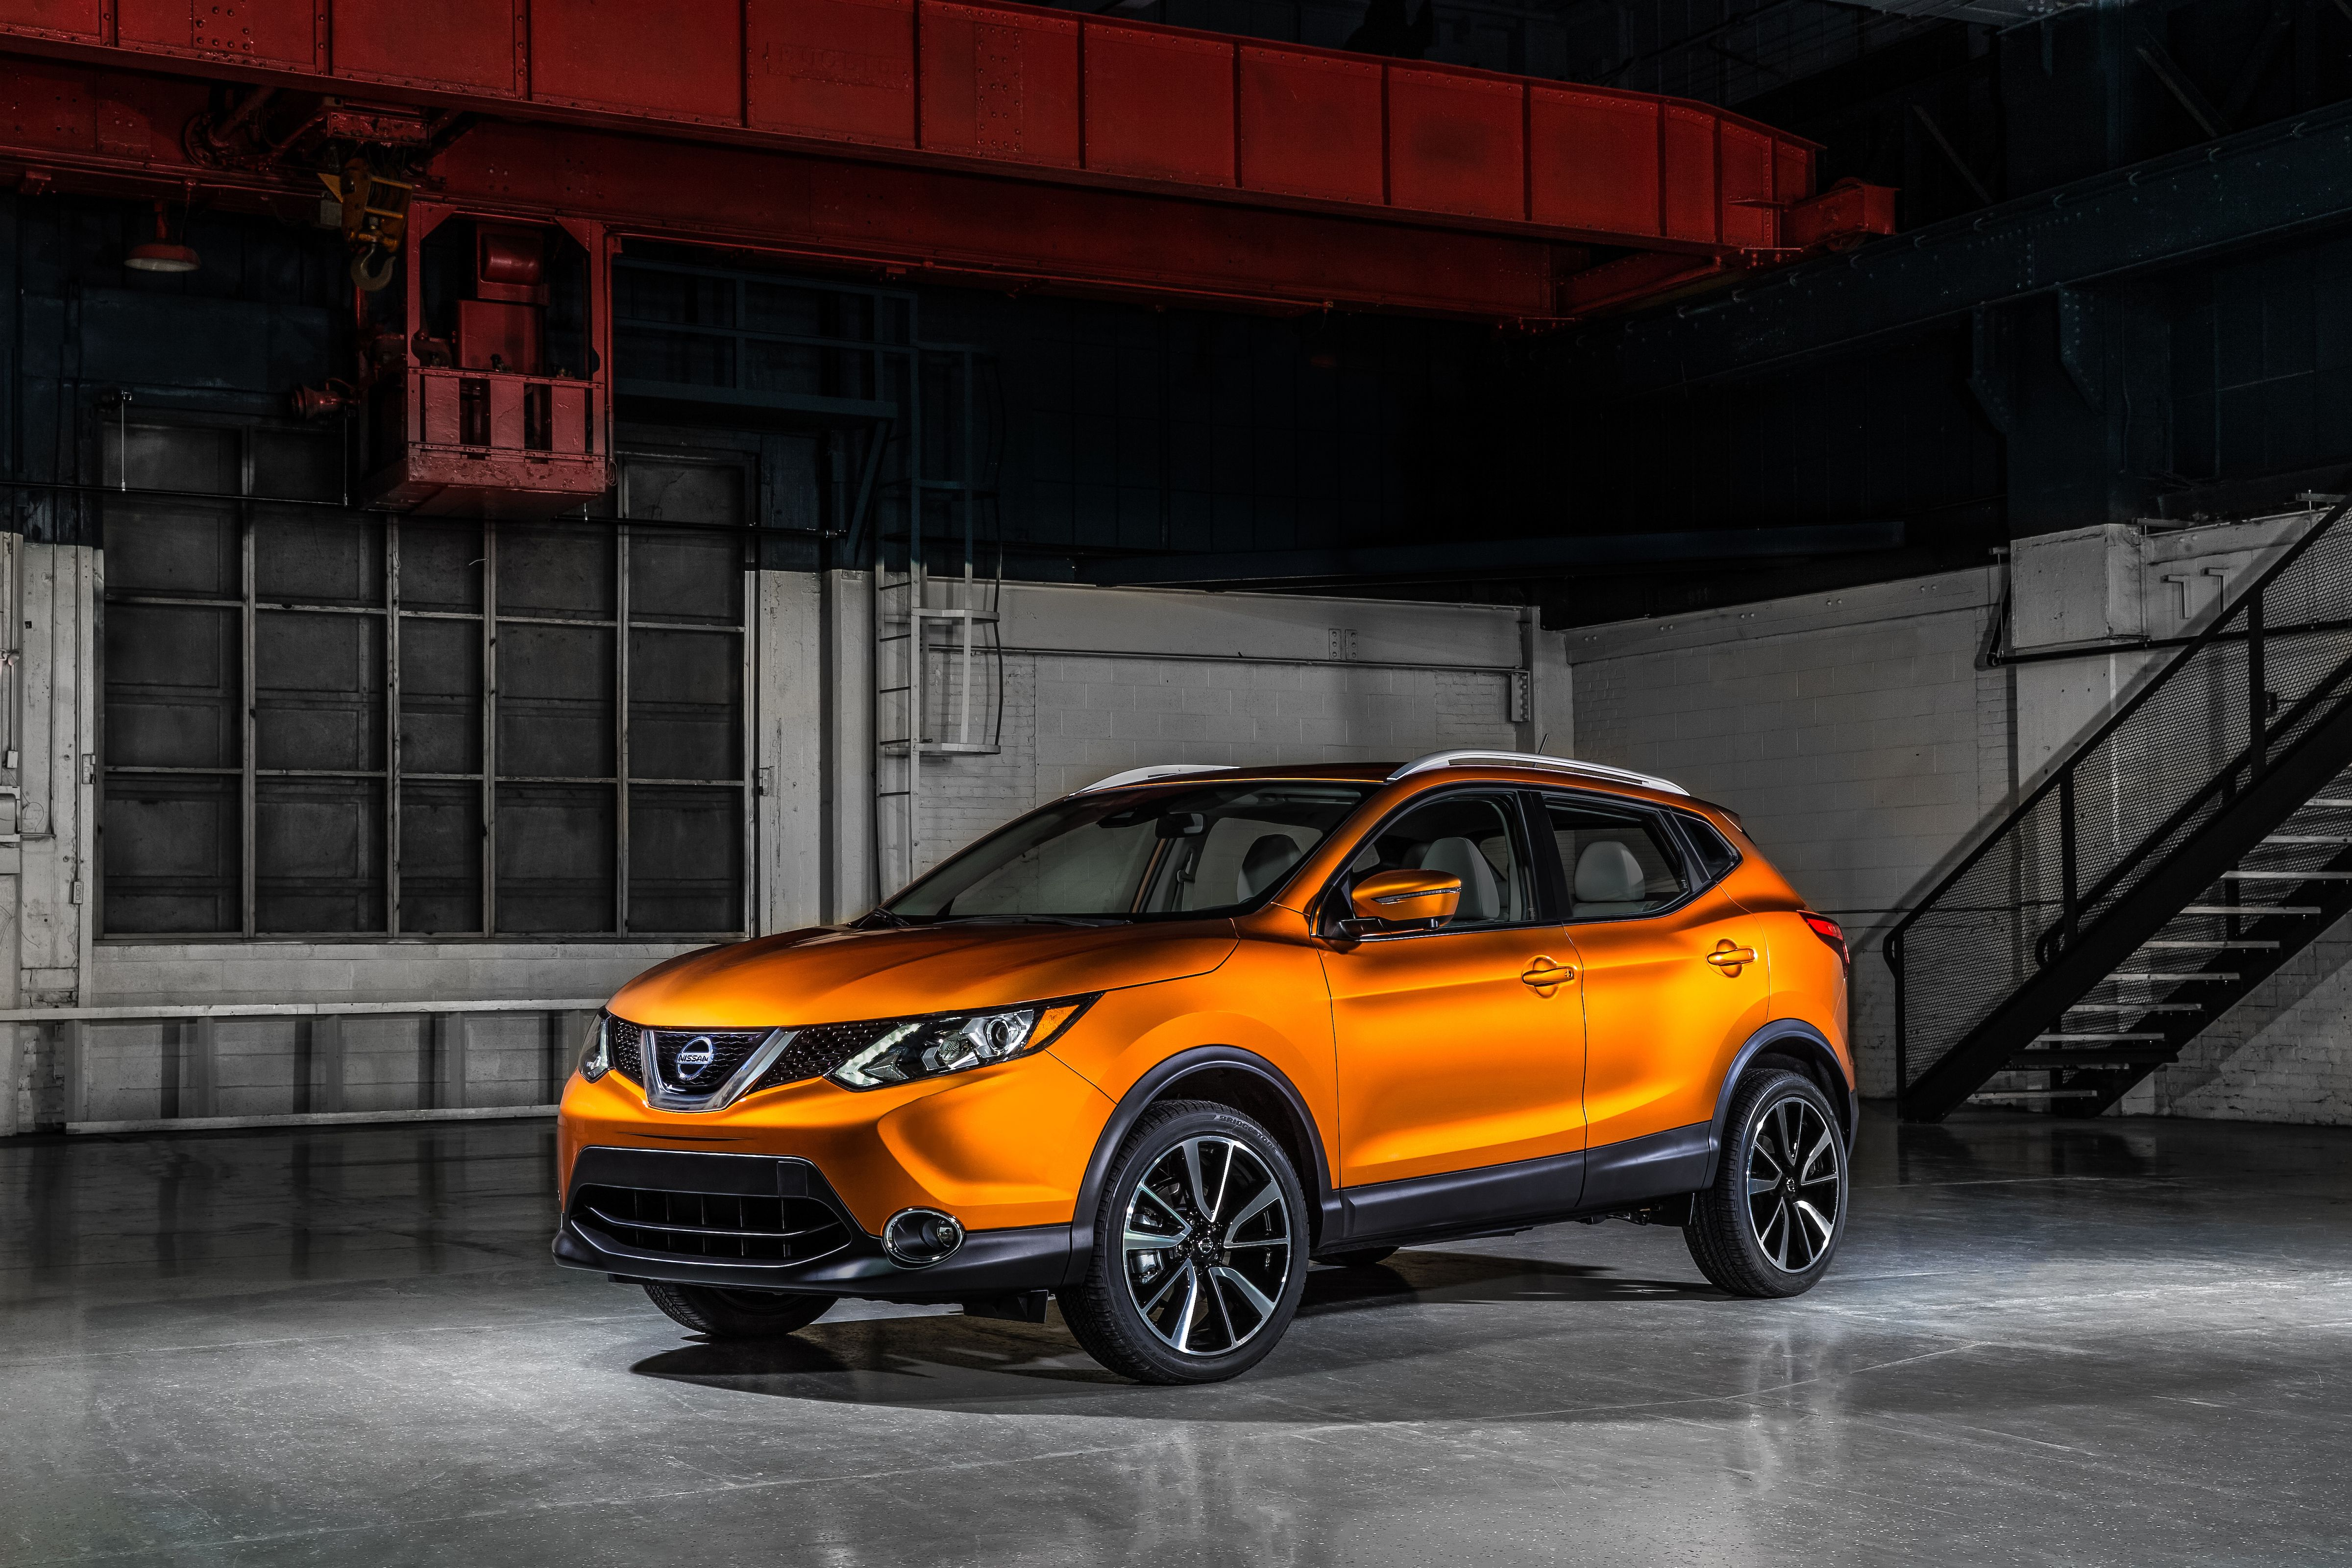 Baby Car Seat For Qashqai Compact Sporty Affordable Introducing The 2017 Nissan